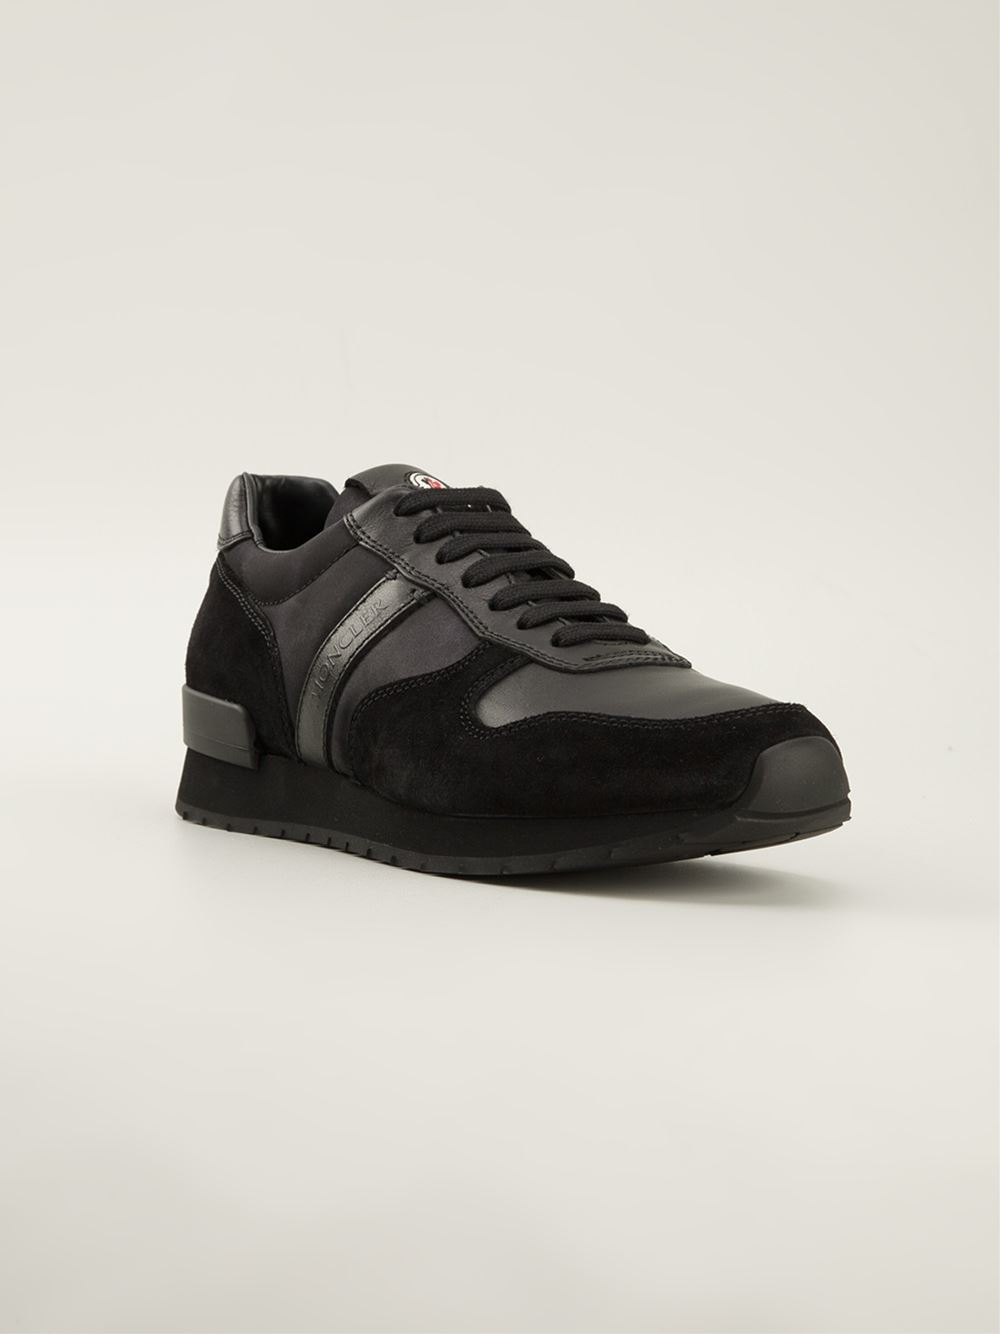 moncler black trainers